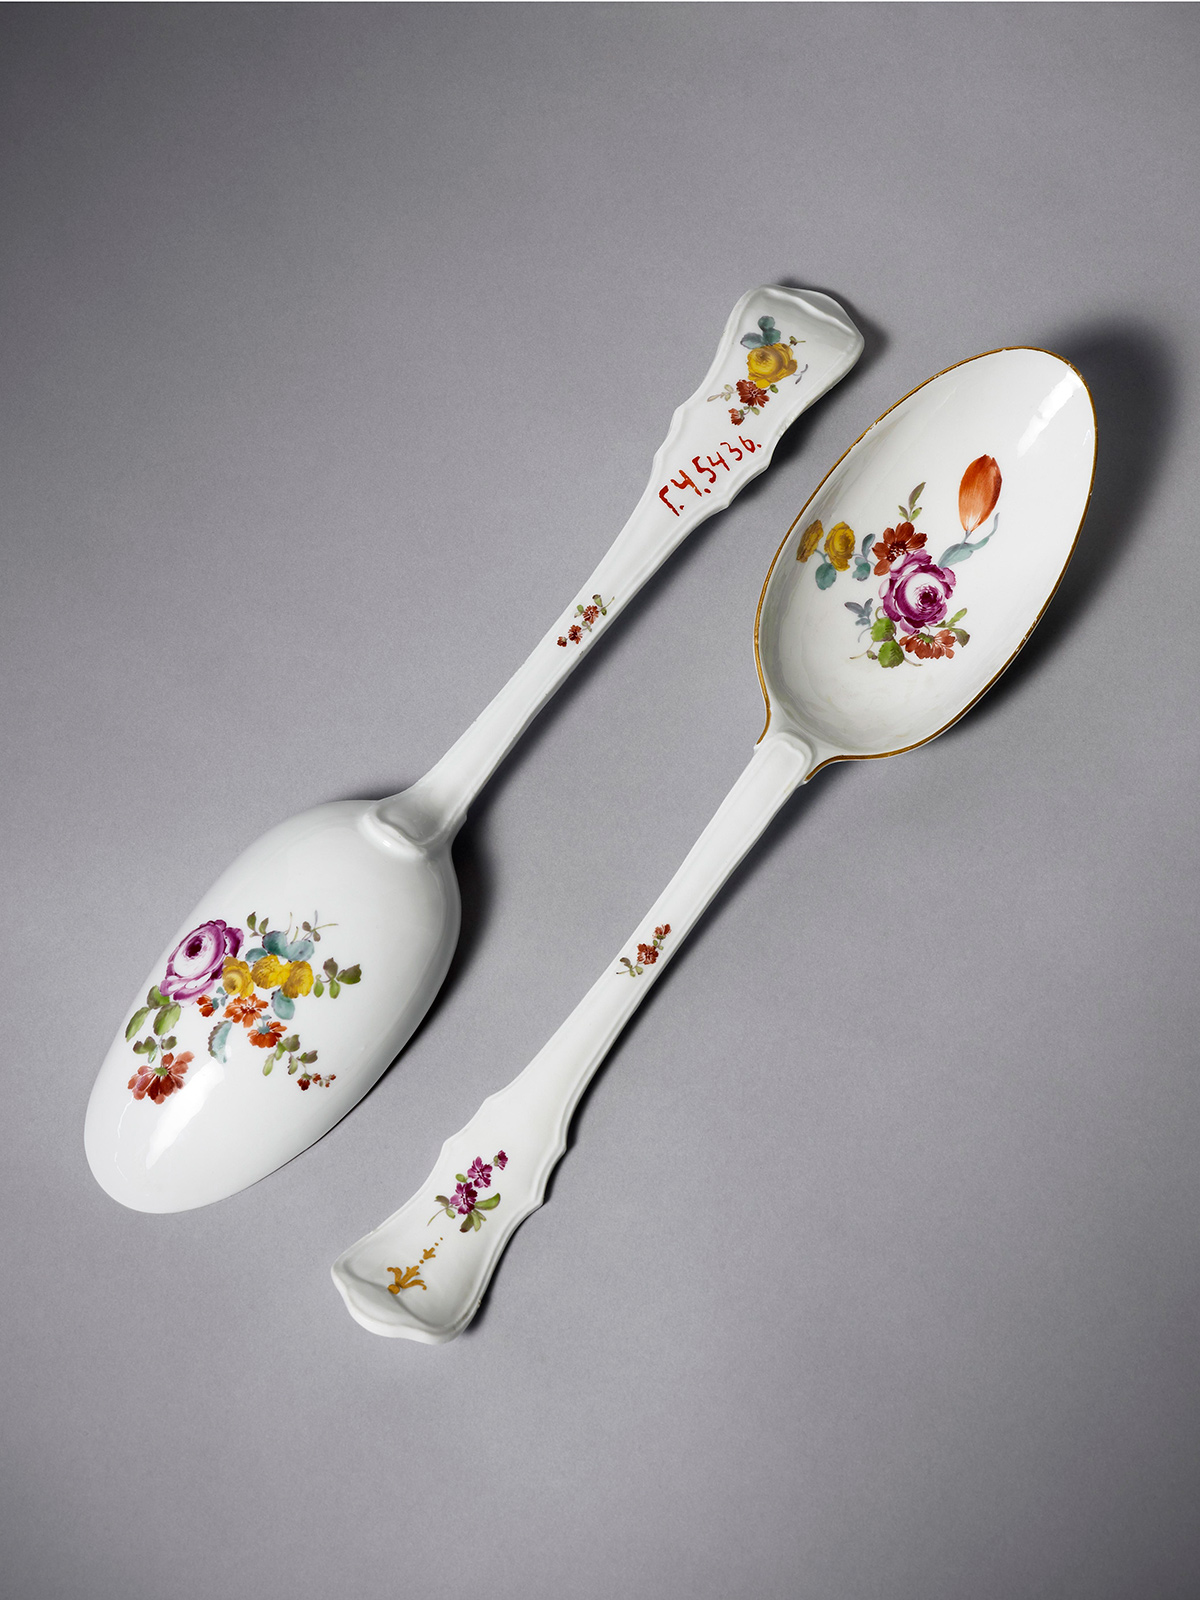 Rare pair of large Meissen Spoons or Ladles